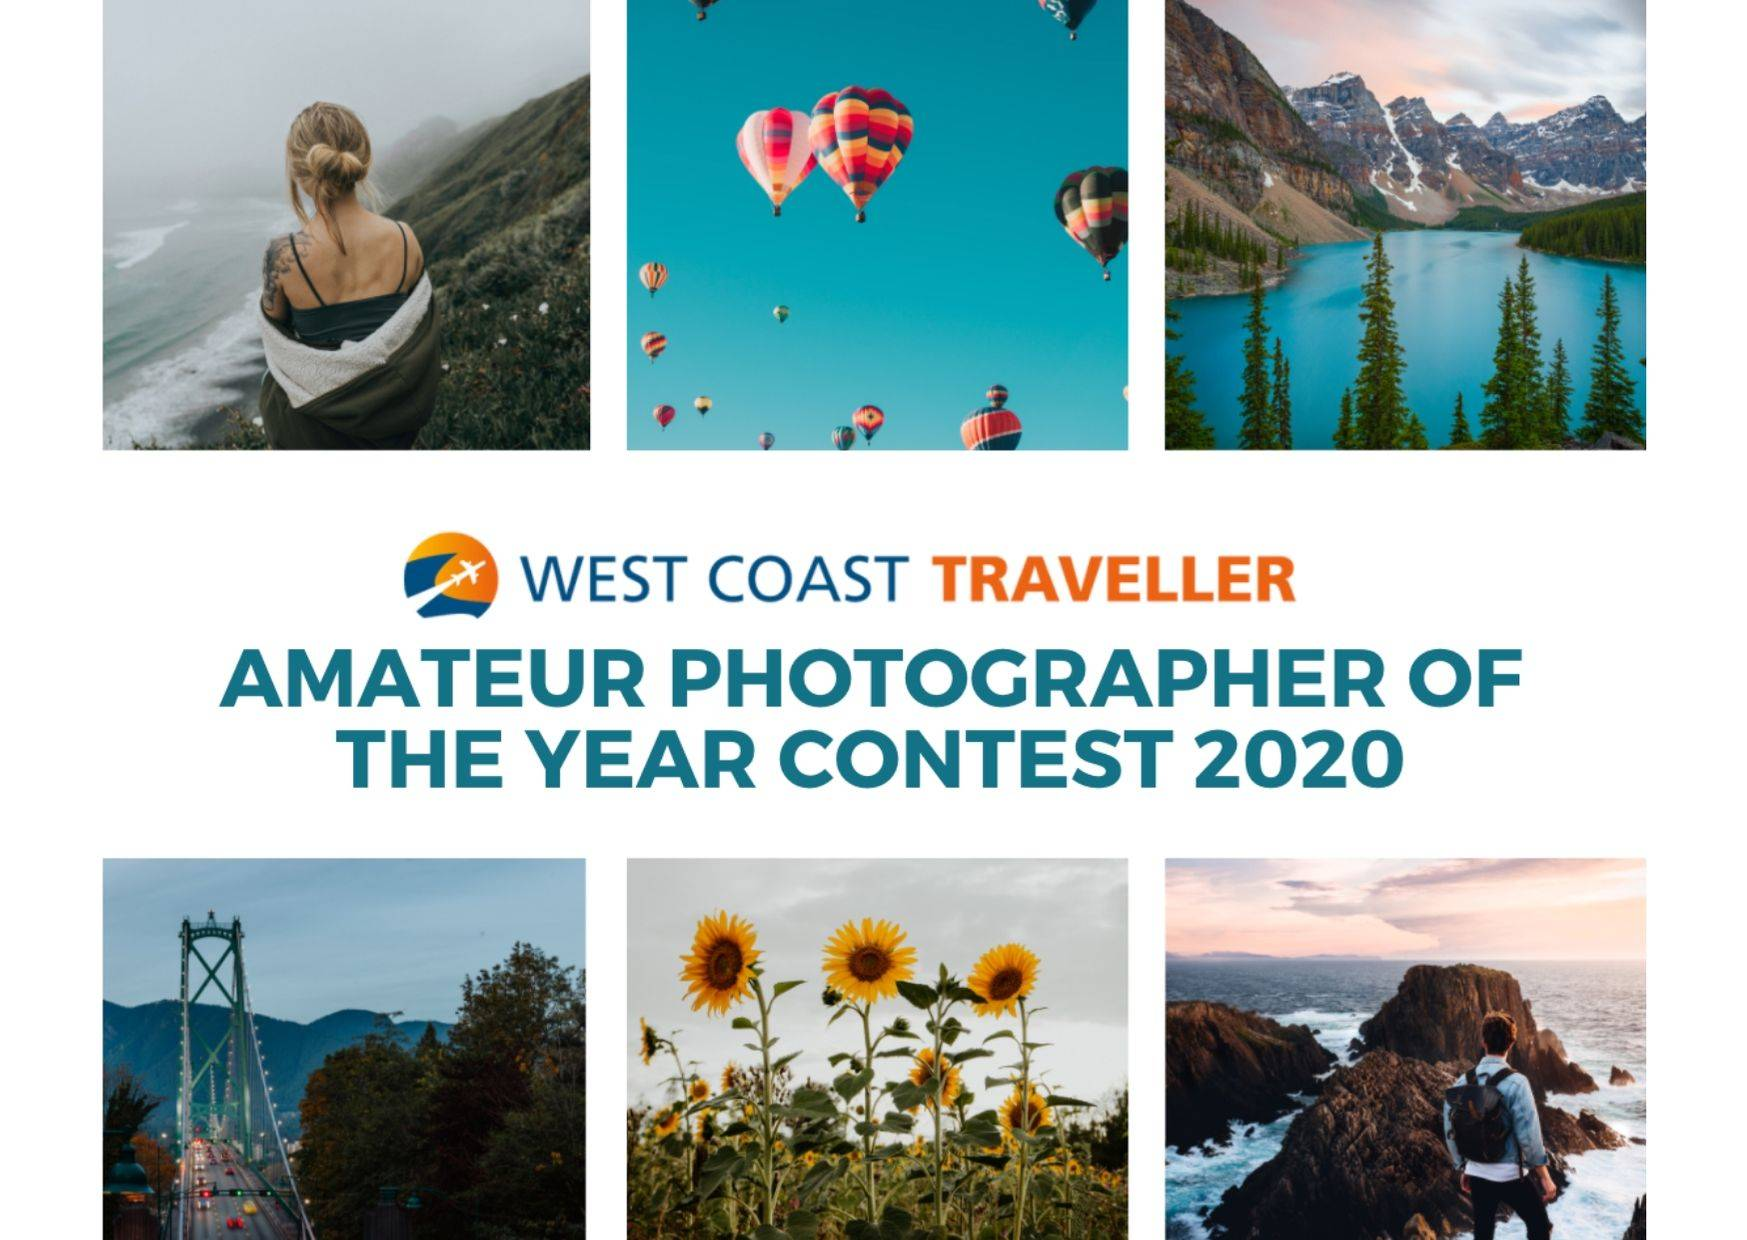 The Amateur Photographer of the Year Contest returns with fresh prizes and awards.